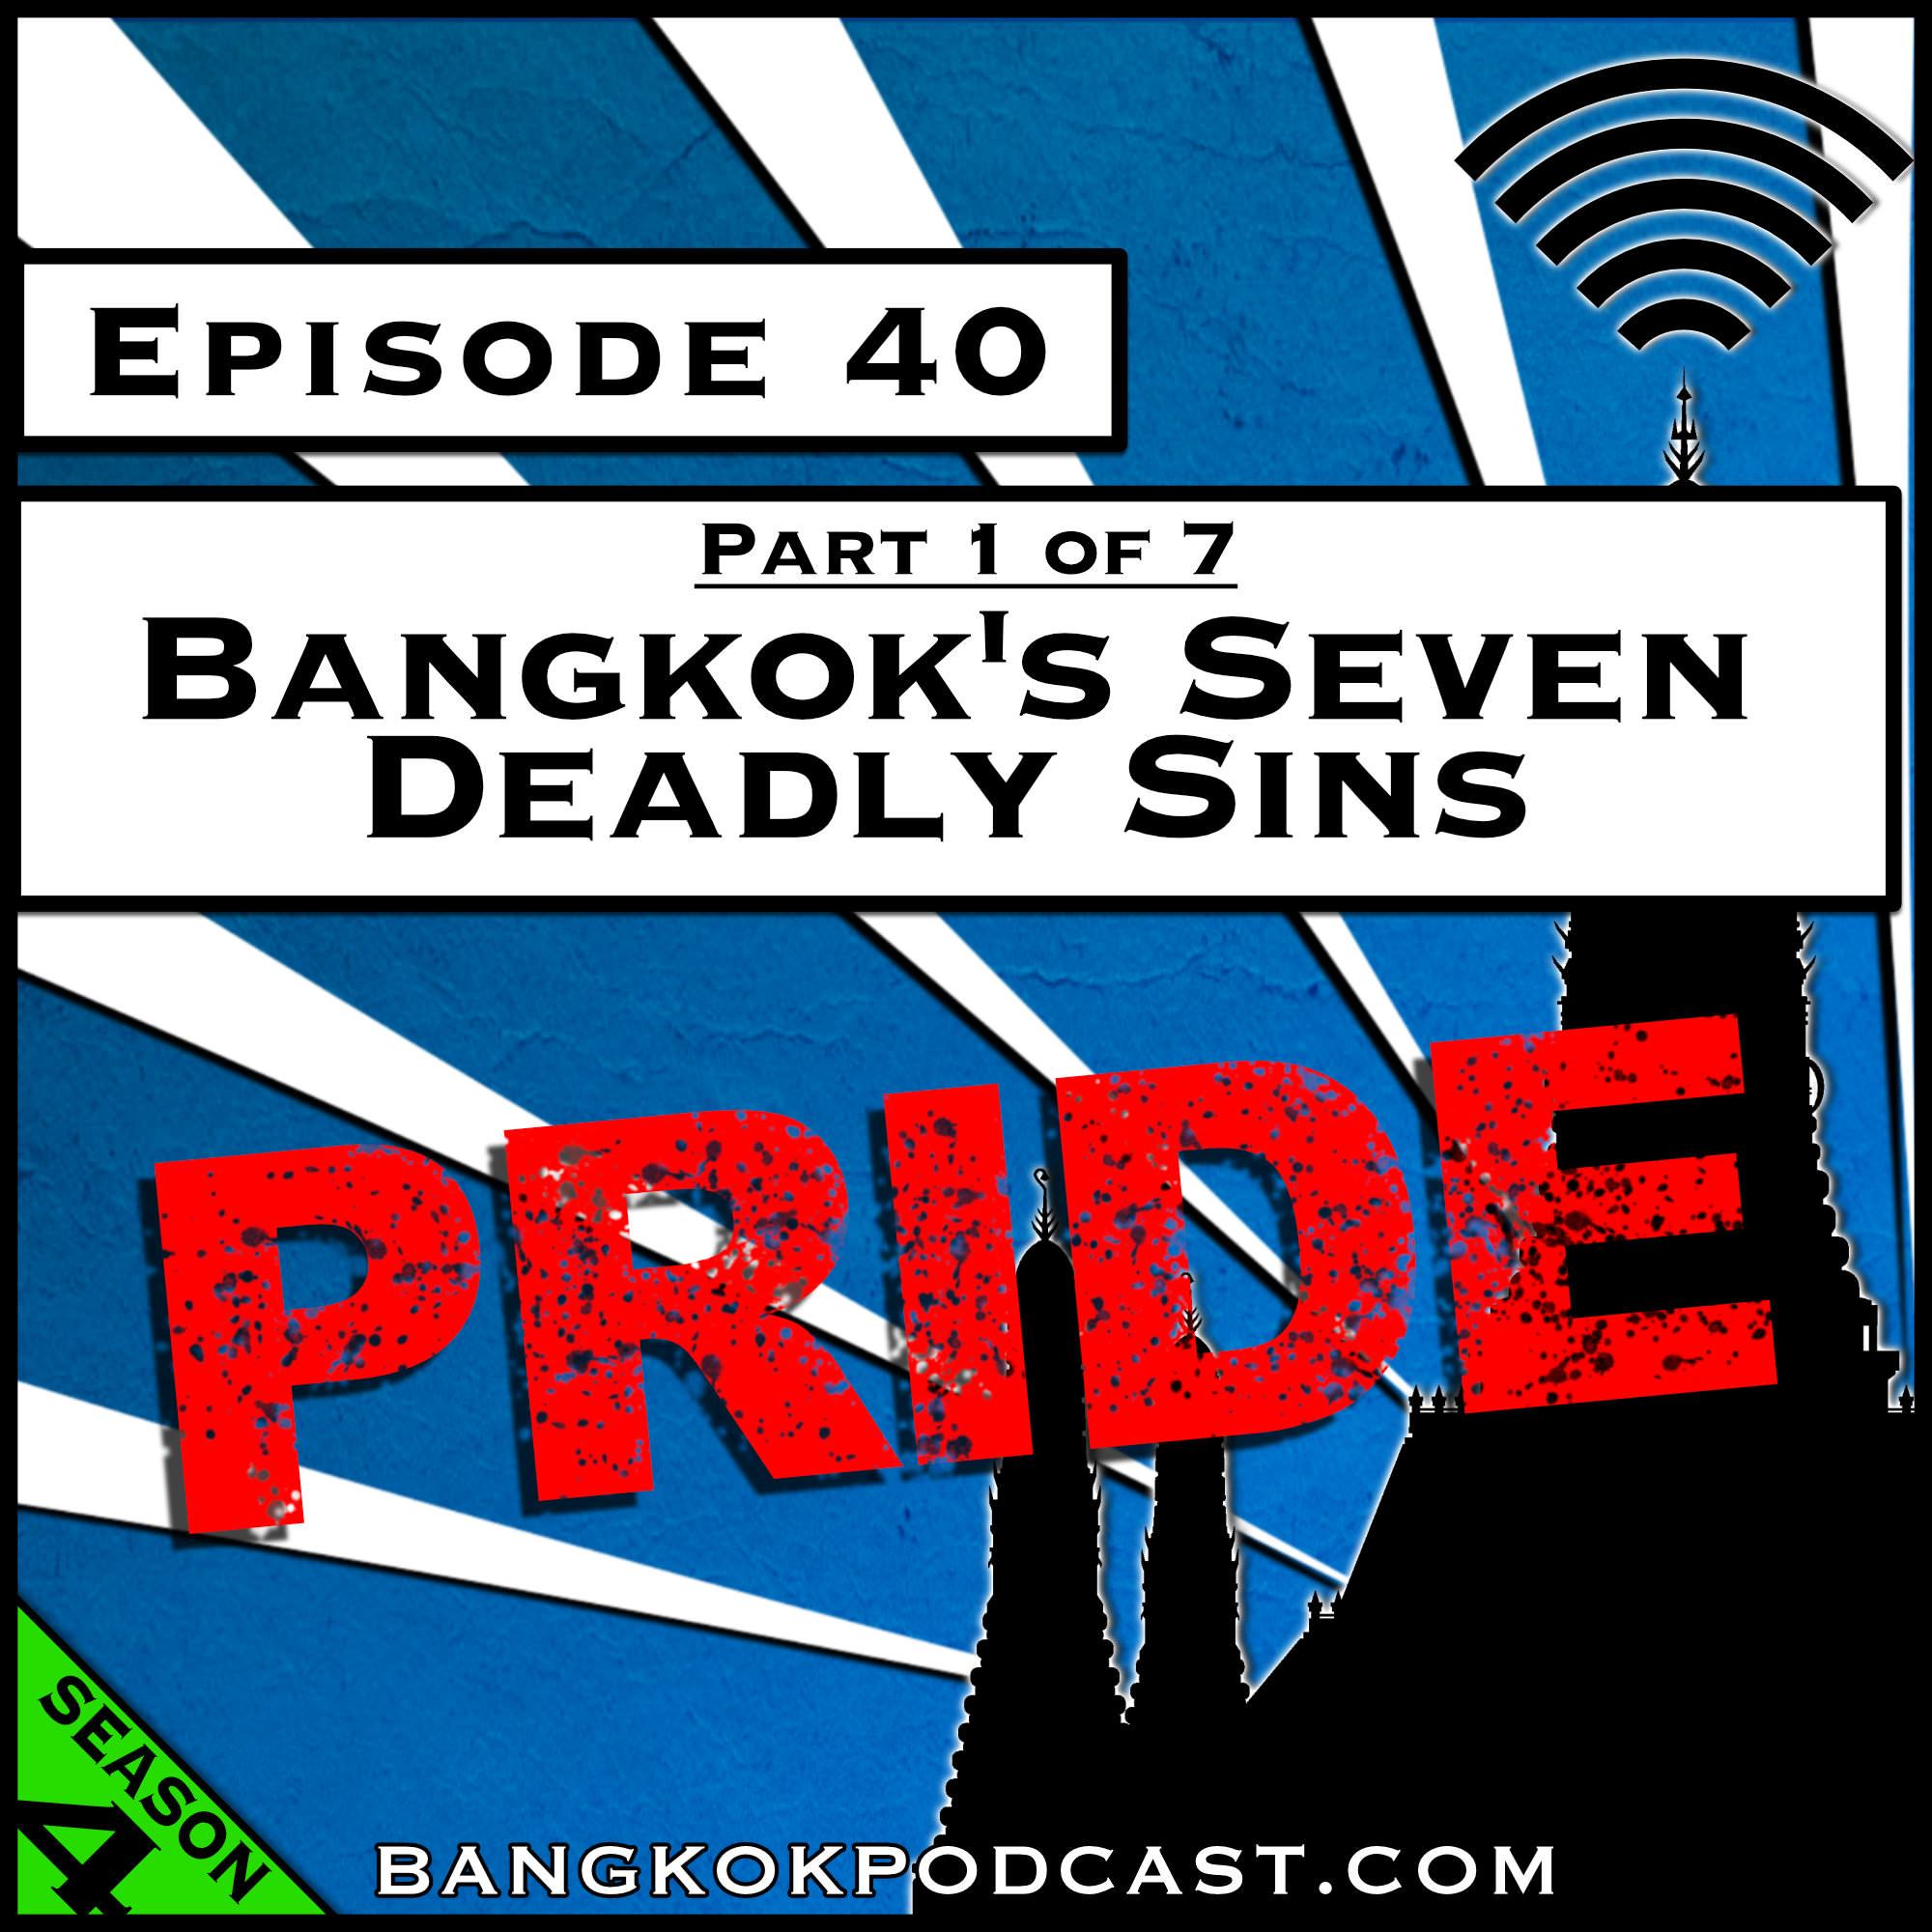 Bangkok's Seven Deadly Sins: Pride [Season 4, Episode 40]